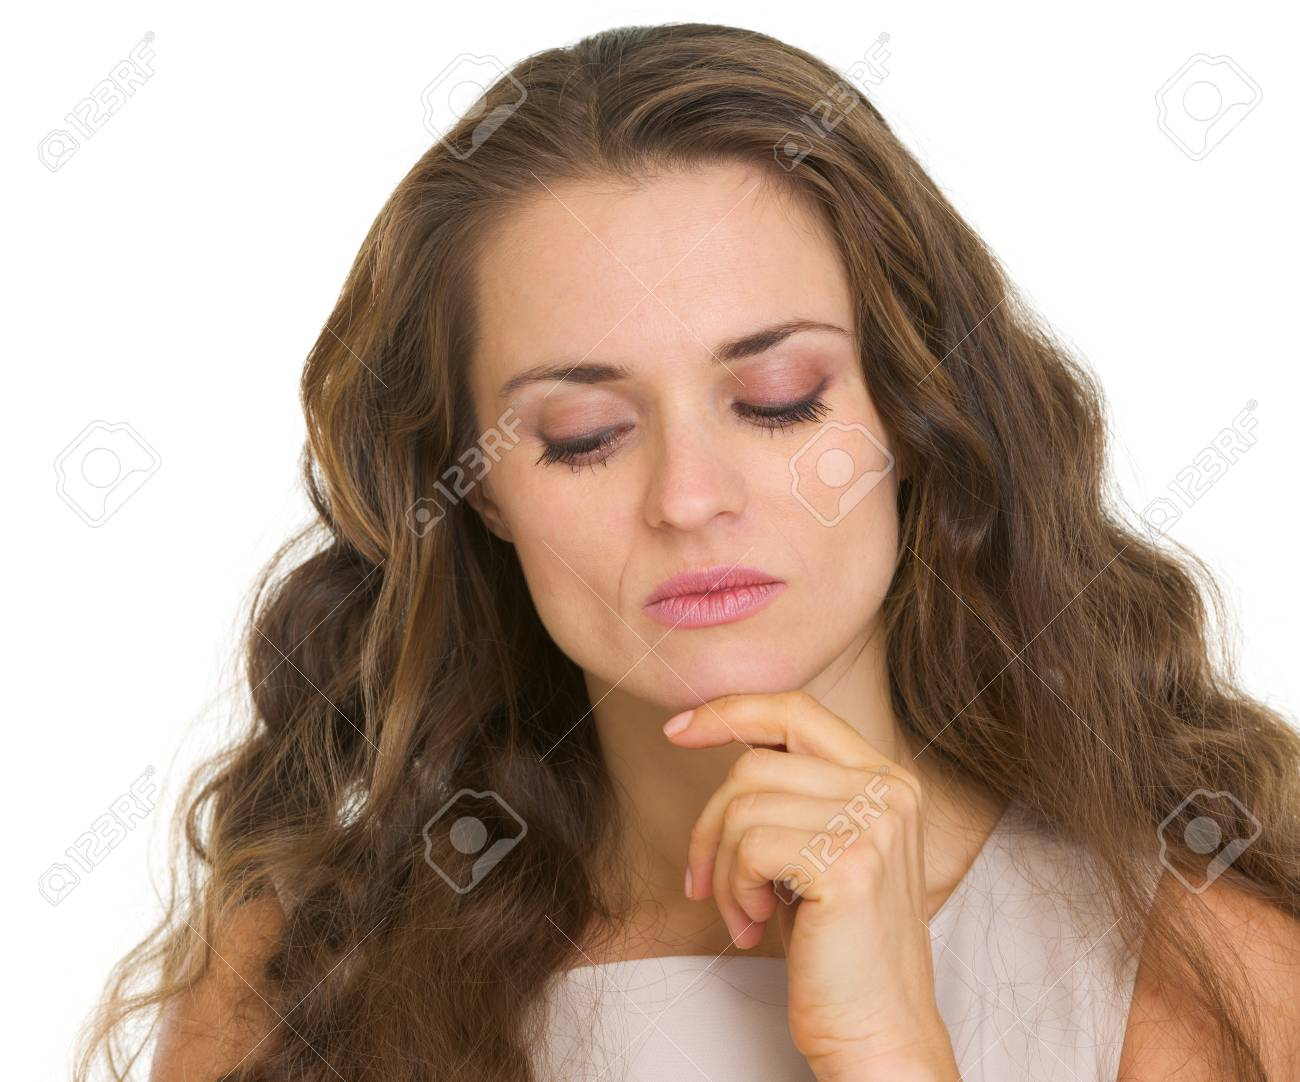 Portrait of thoughtful young woman looking down Stock Photo - 18788079